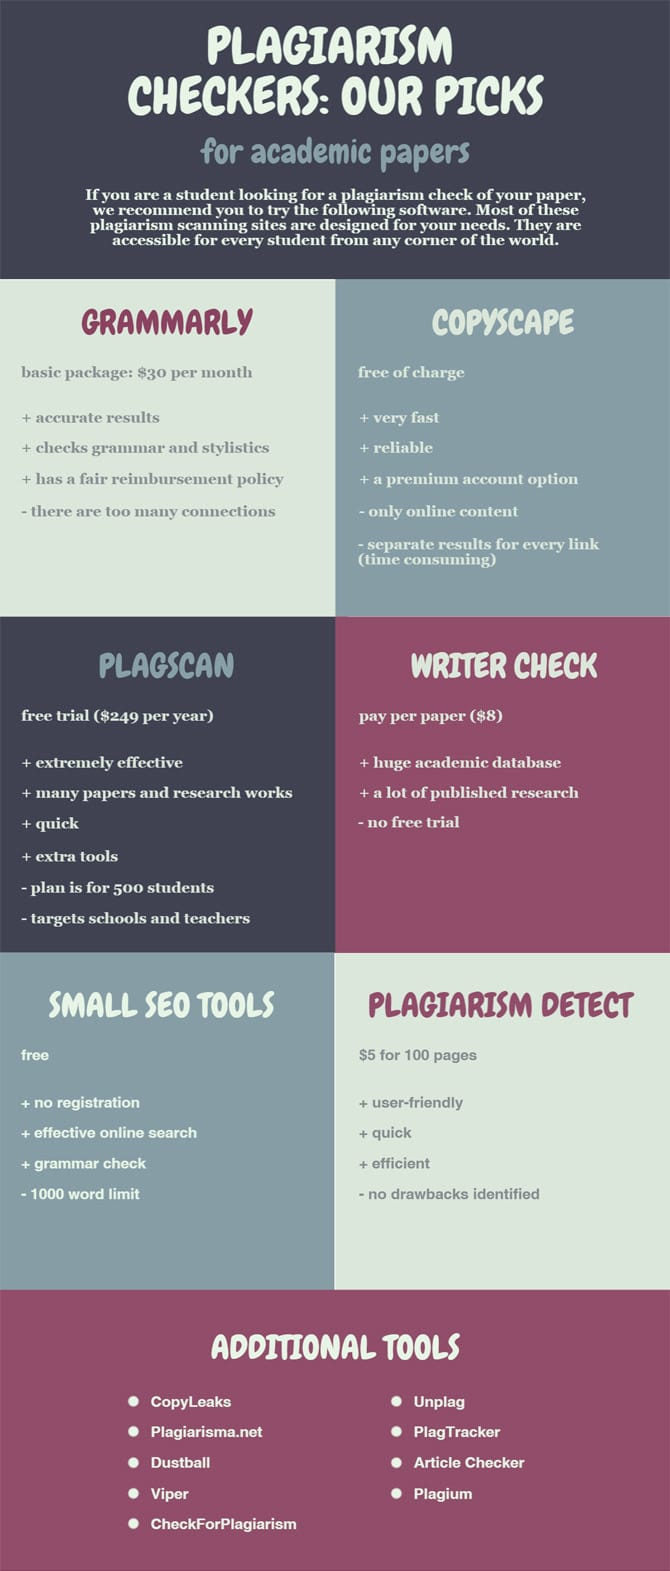 essay plagiarism check essay personal statement plagiarism checker  essay similarity checker plagiarism checkers our picks